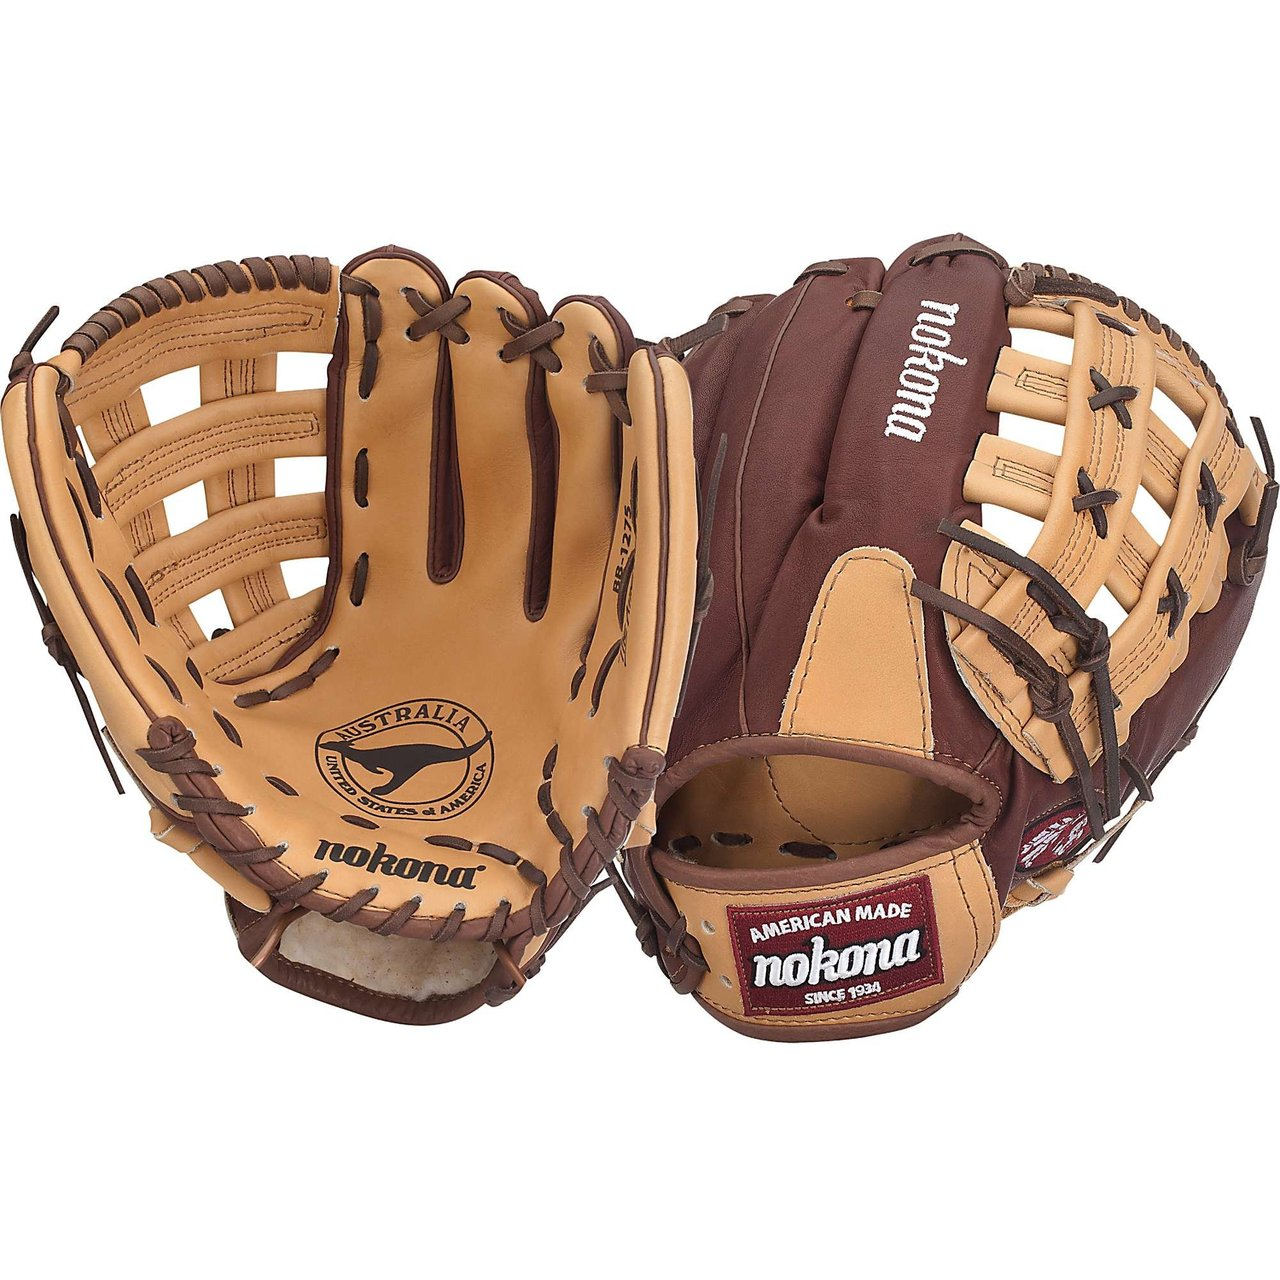 A200 TB 10  - BlueBlack Wilson A200 10  BlueBlack Teeball Glove A200 10  BlueBlack Teeball Baseball Glove - Right Hand ThrowWTA0200TBBOYTeach your favorite tee ball player how to play the game you love with the Wilson A200 10  BlueBlack Teeball Glove. Built with super soft EVA, the Wilson MLB Tee Ball Glove is easy for beginners to close so they can catch the ball. The perfect first glove for your tee ball player learning the game. The A200 series is built with Super Soft EVA material that is lightweight and flexible, making it easier for your beginner to close the glove and play catch. 10 All PositionsH-WebSuper Soft EVA material is lightweight and flexible youthRHT 10 victory web A200 TB 9.5 A360 11 A1074 Wilson Players Video